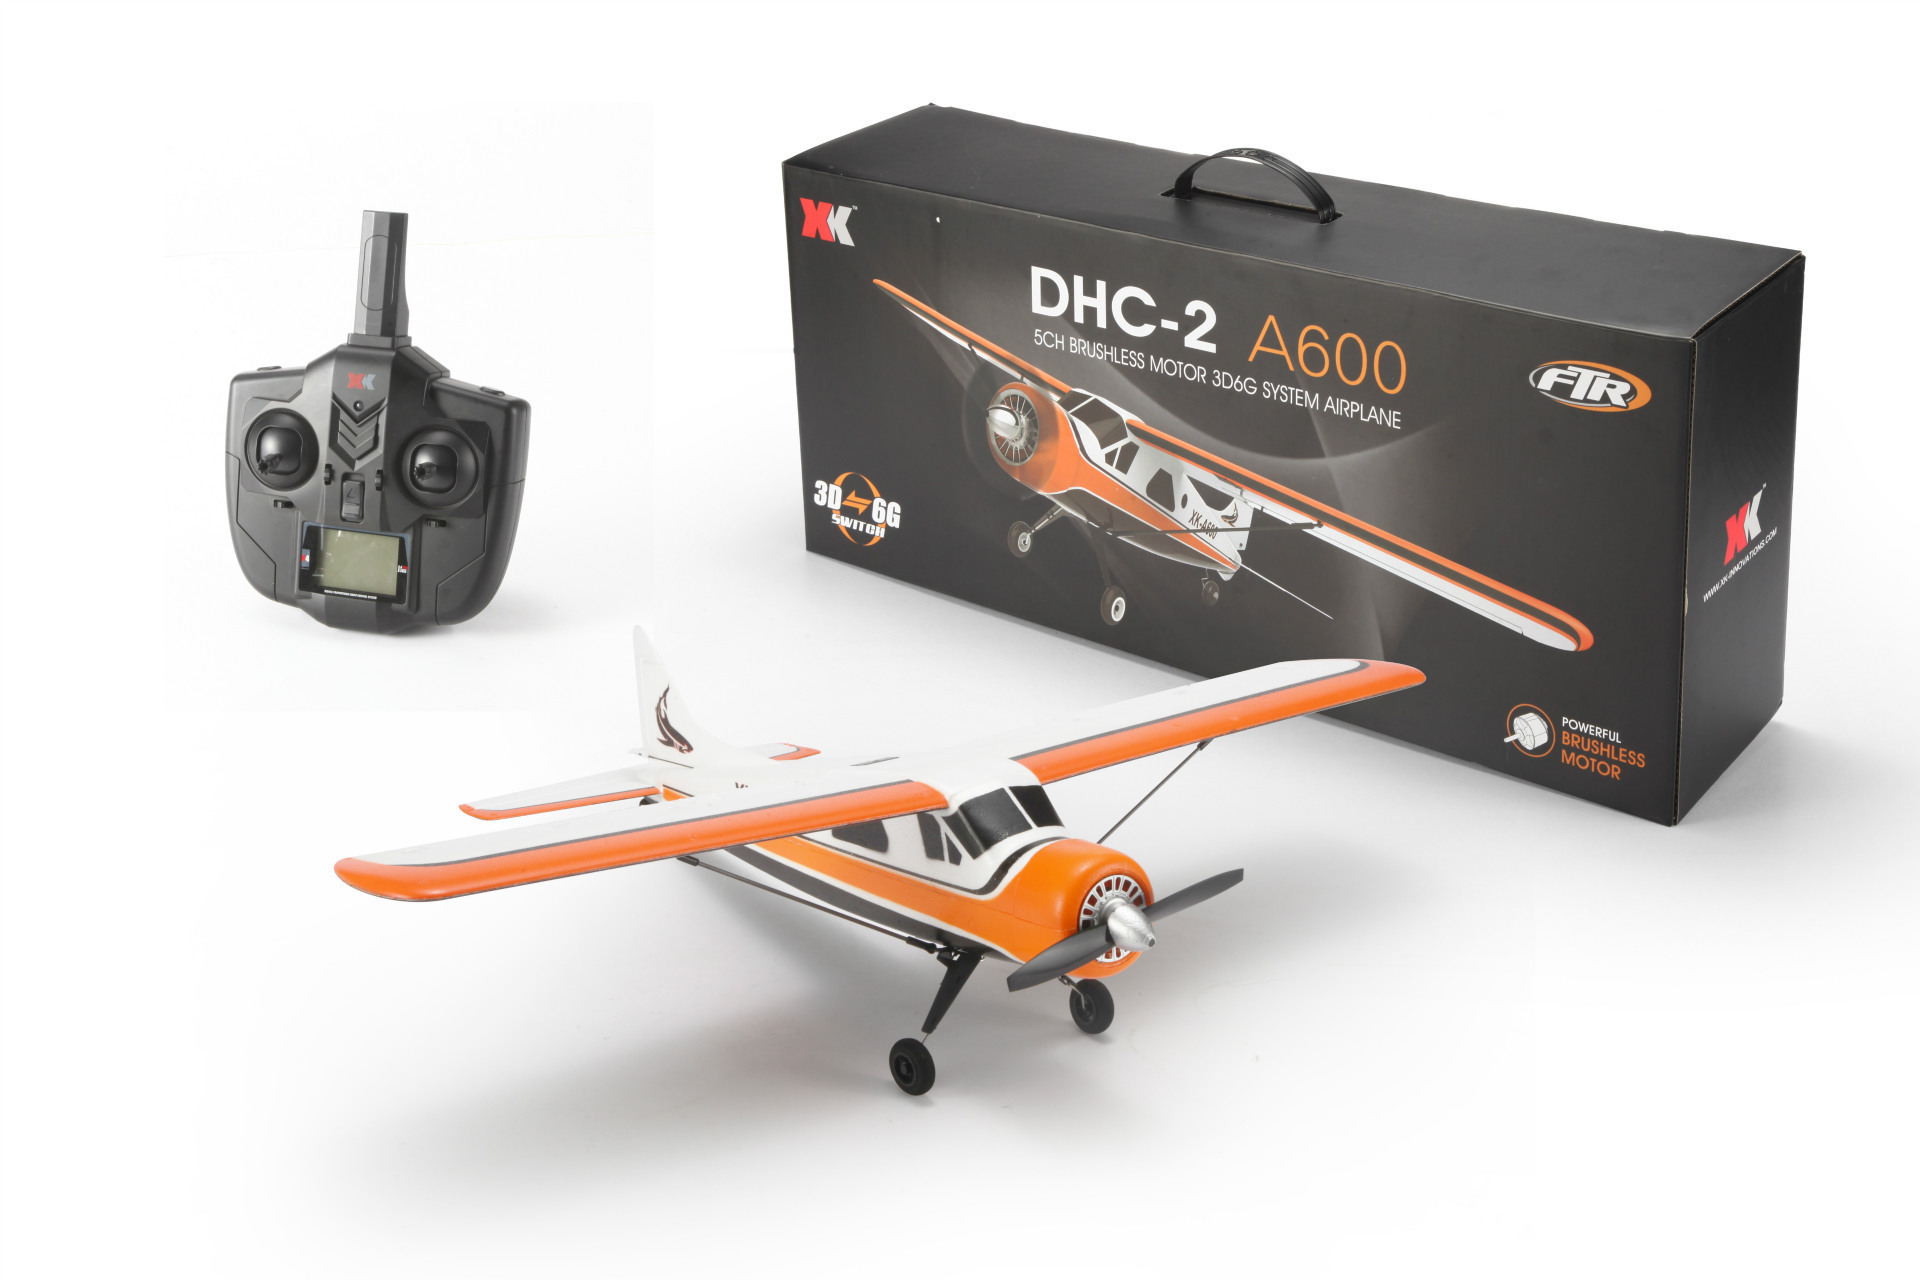 Weili XK A600 Brushless Motor Remote-control Drone Brushless Glider Model Toy Unmanned Aerial Vehicle